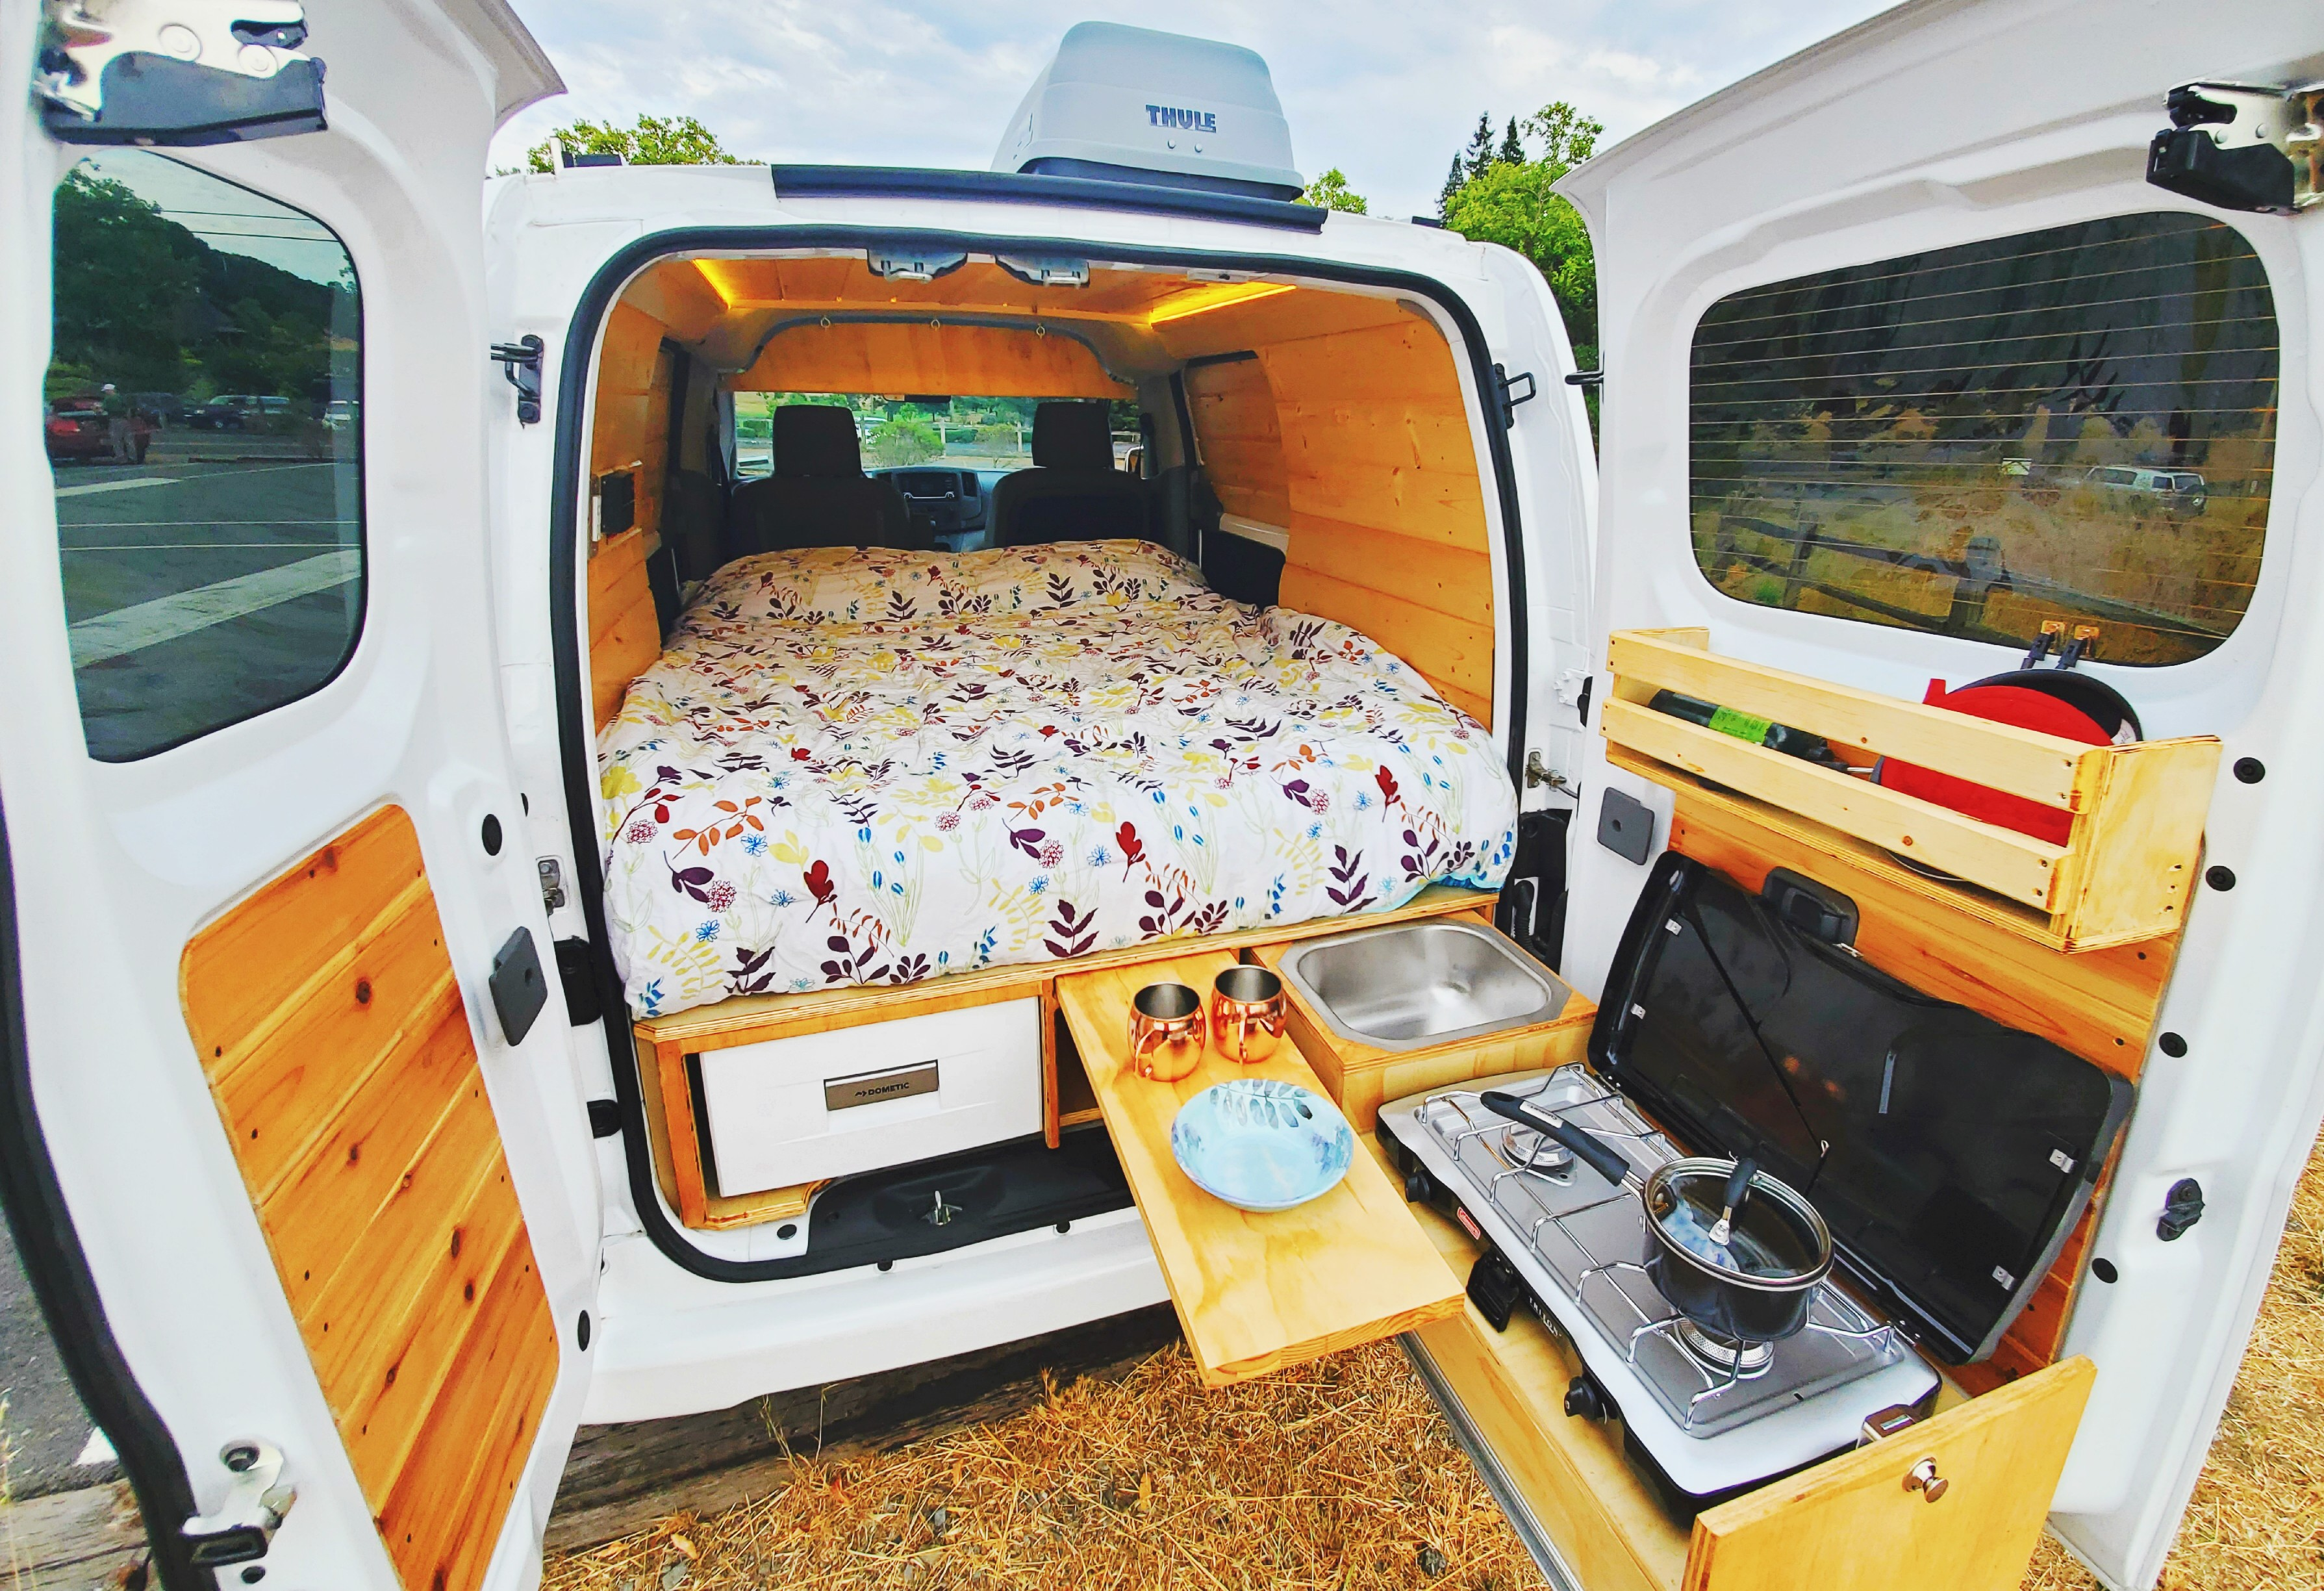 Kitchenware included with rental including silverware, plates, bowls, pot, pan and cups!. Nissan NV200 2019